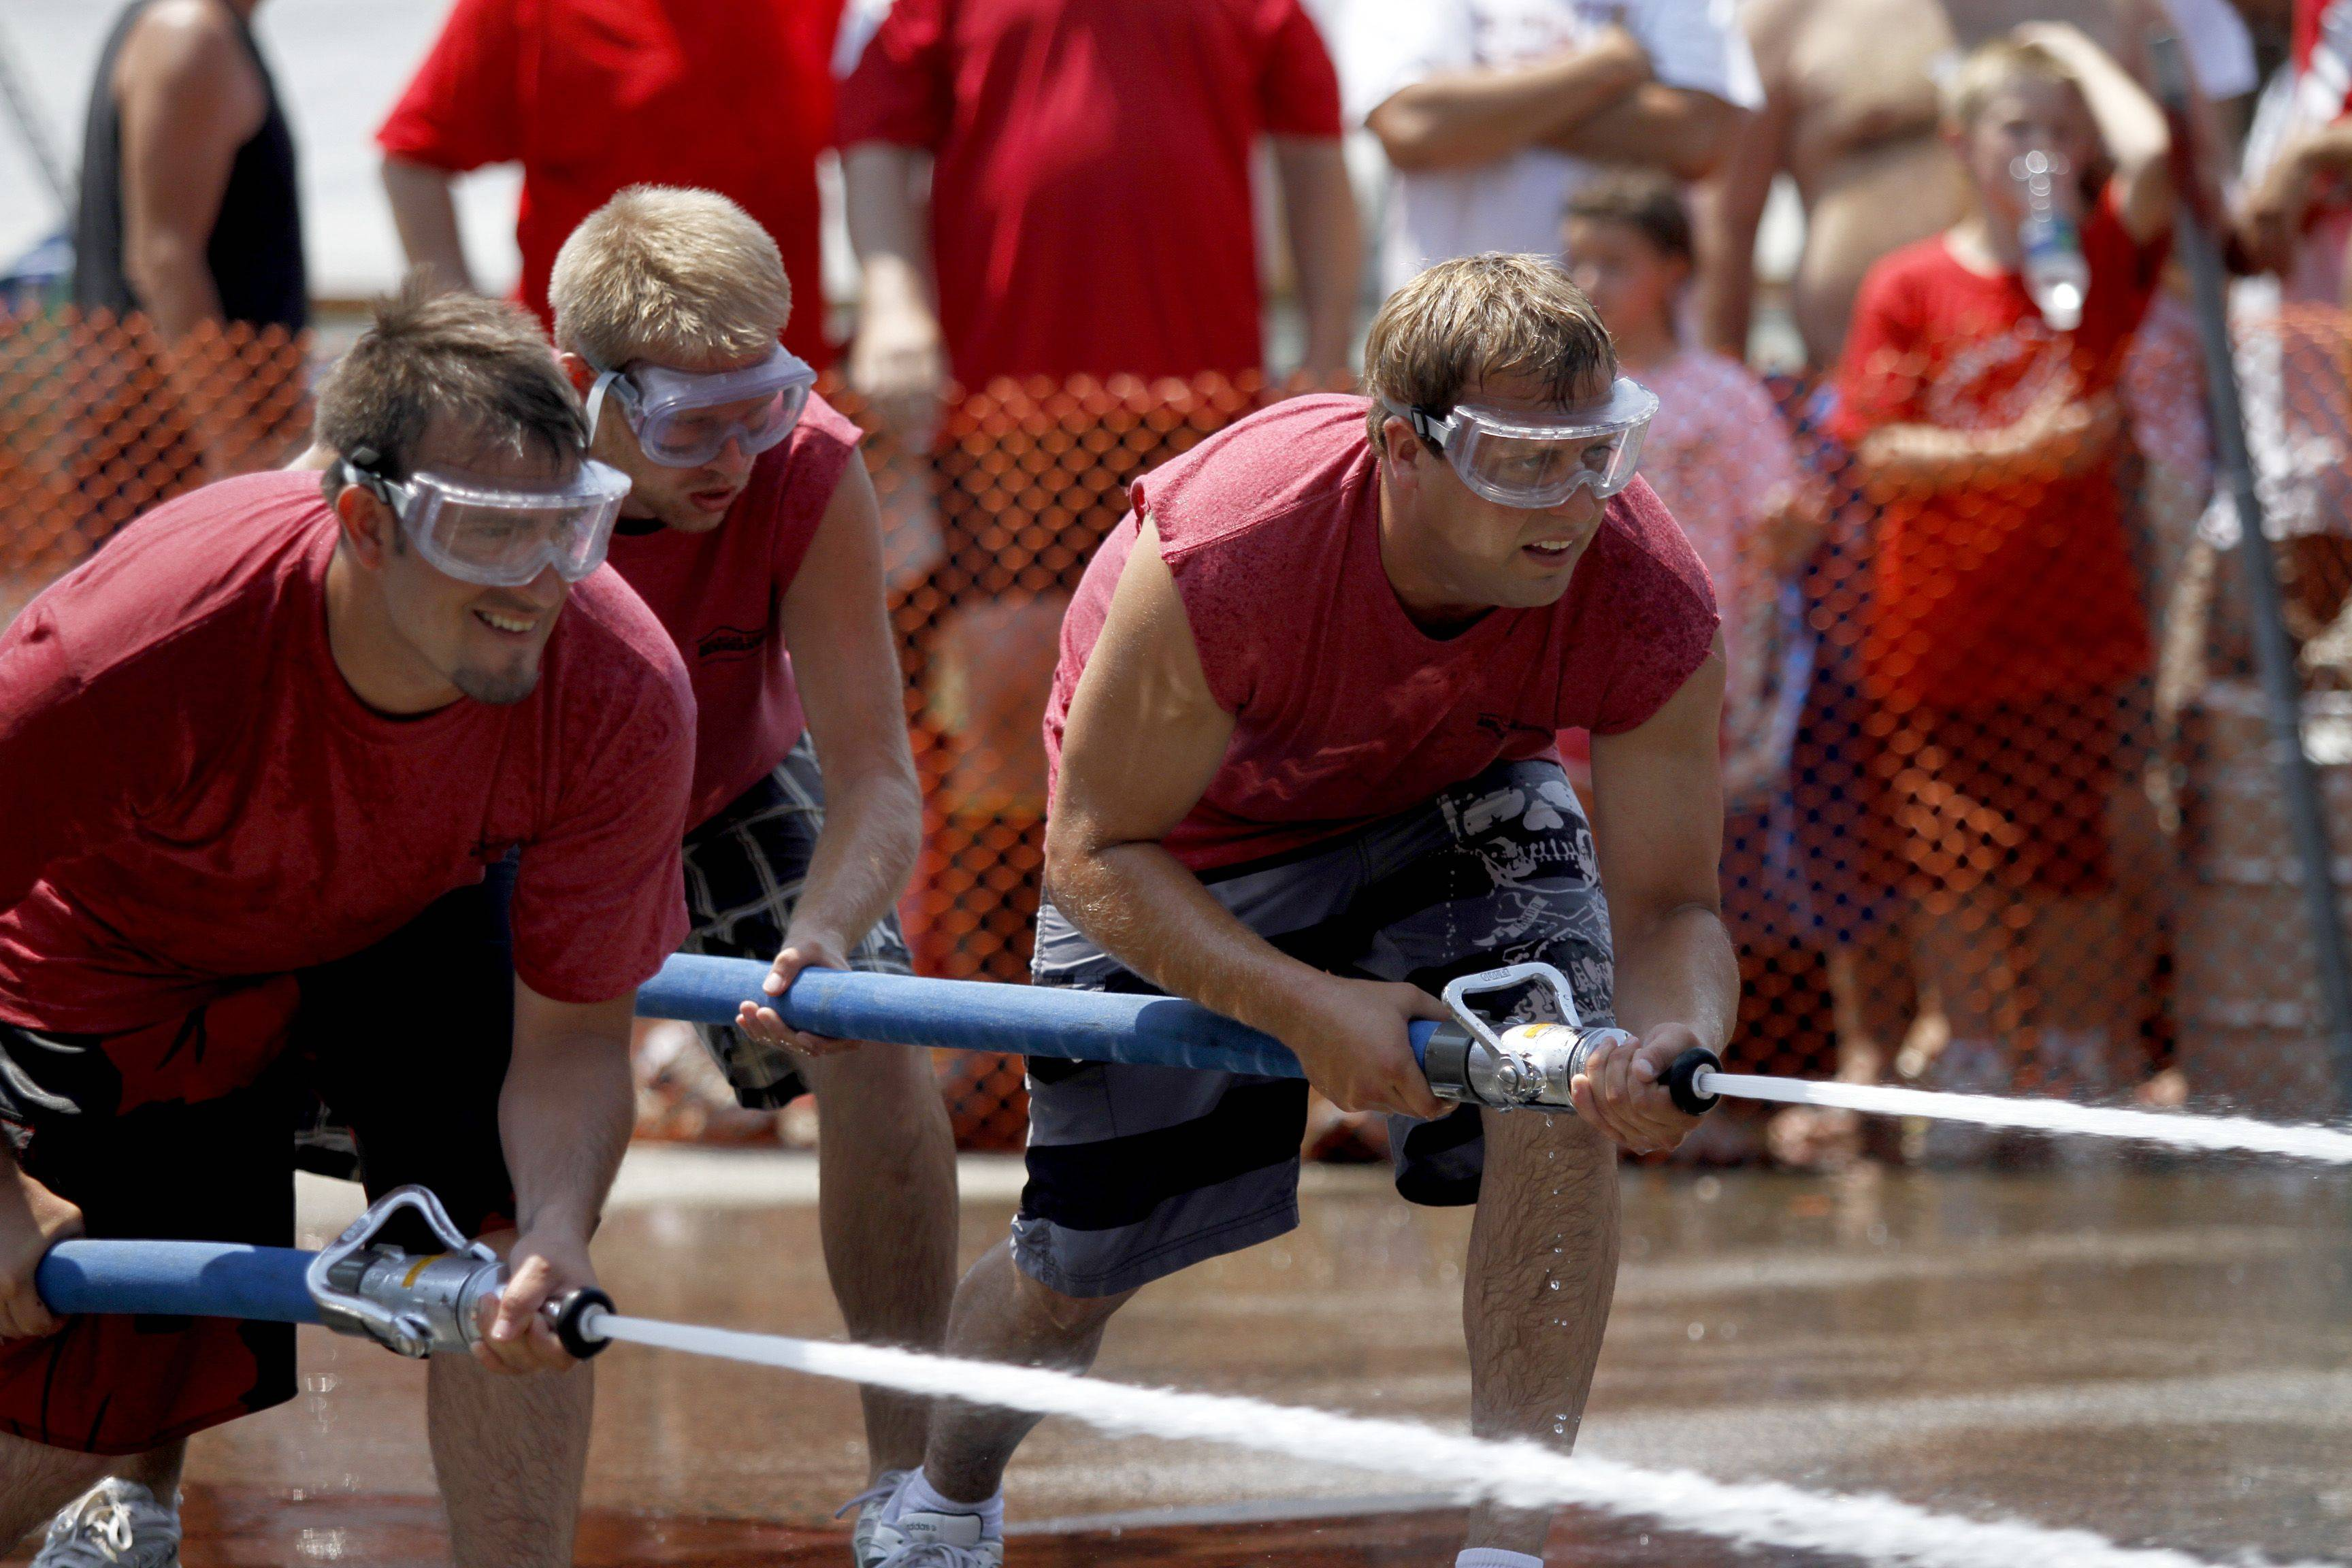 Nick Ray, right, Zach Willamas, middle, and Danny Carole, left, all from Fox Lake, compete in a water fight Sunday afternoon for the Fireman's festival. Teams had a two minute heat to get a barrel onto the other teams side.